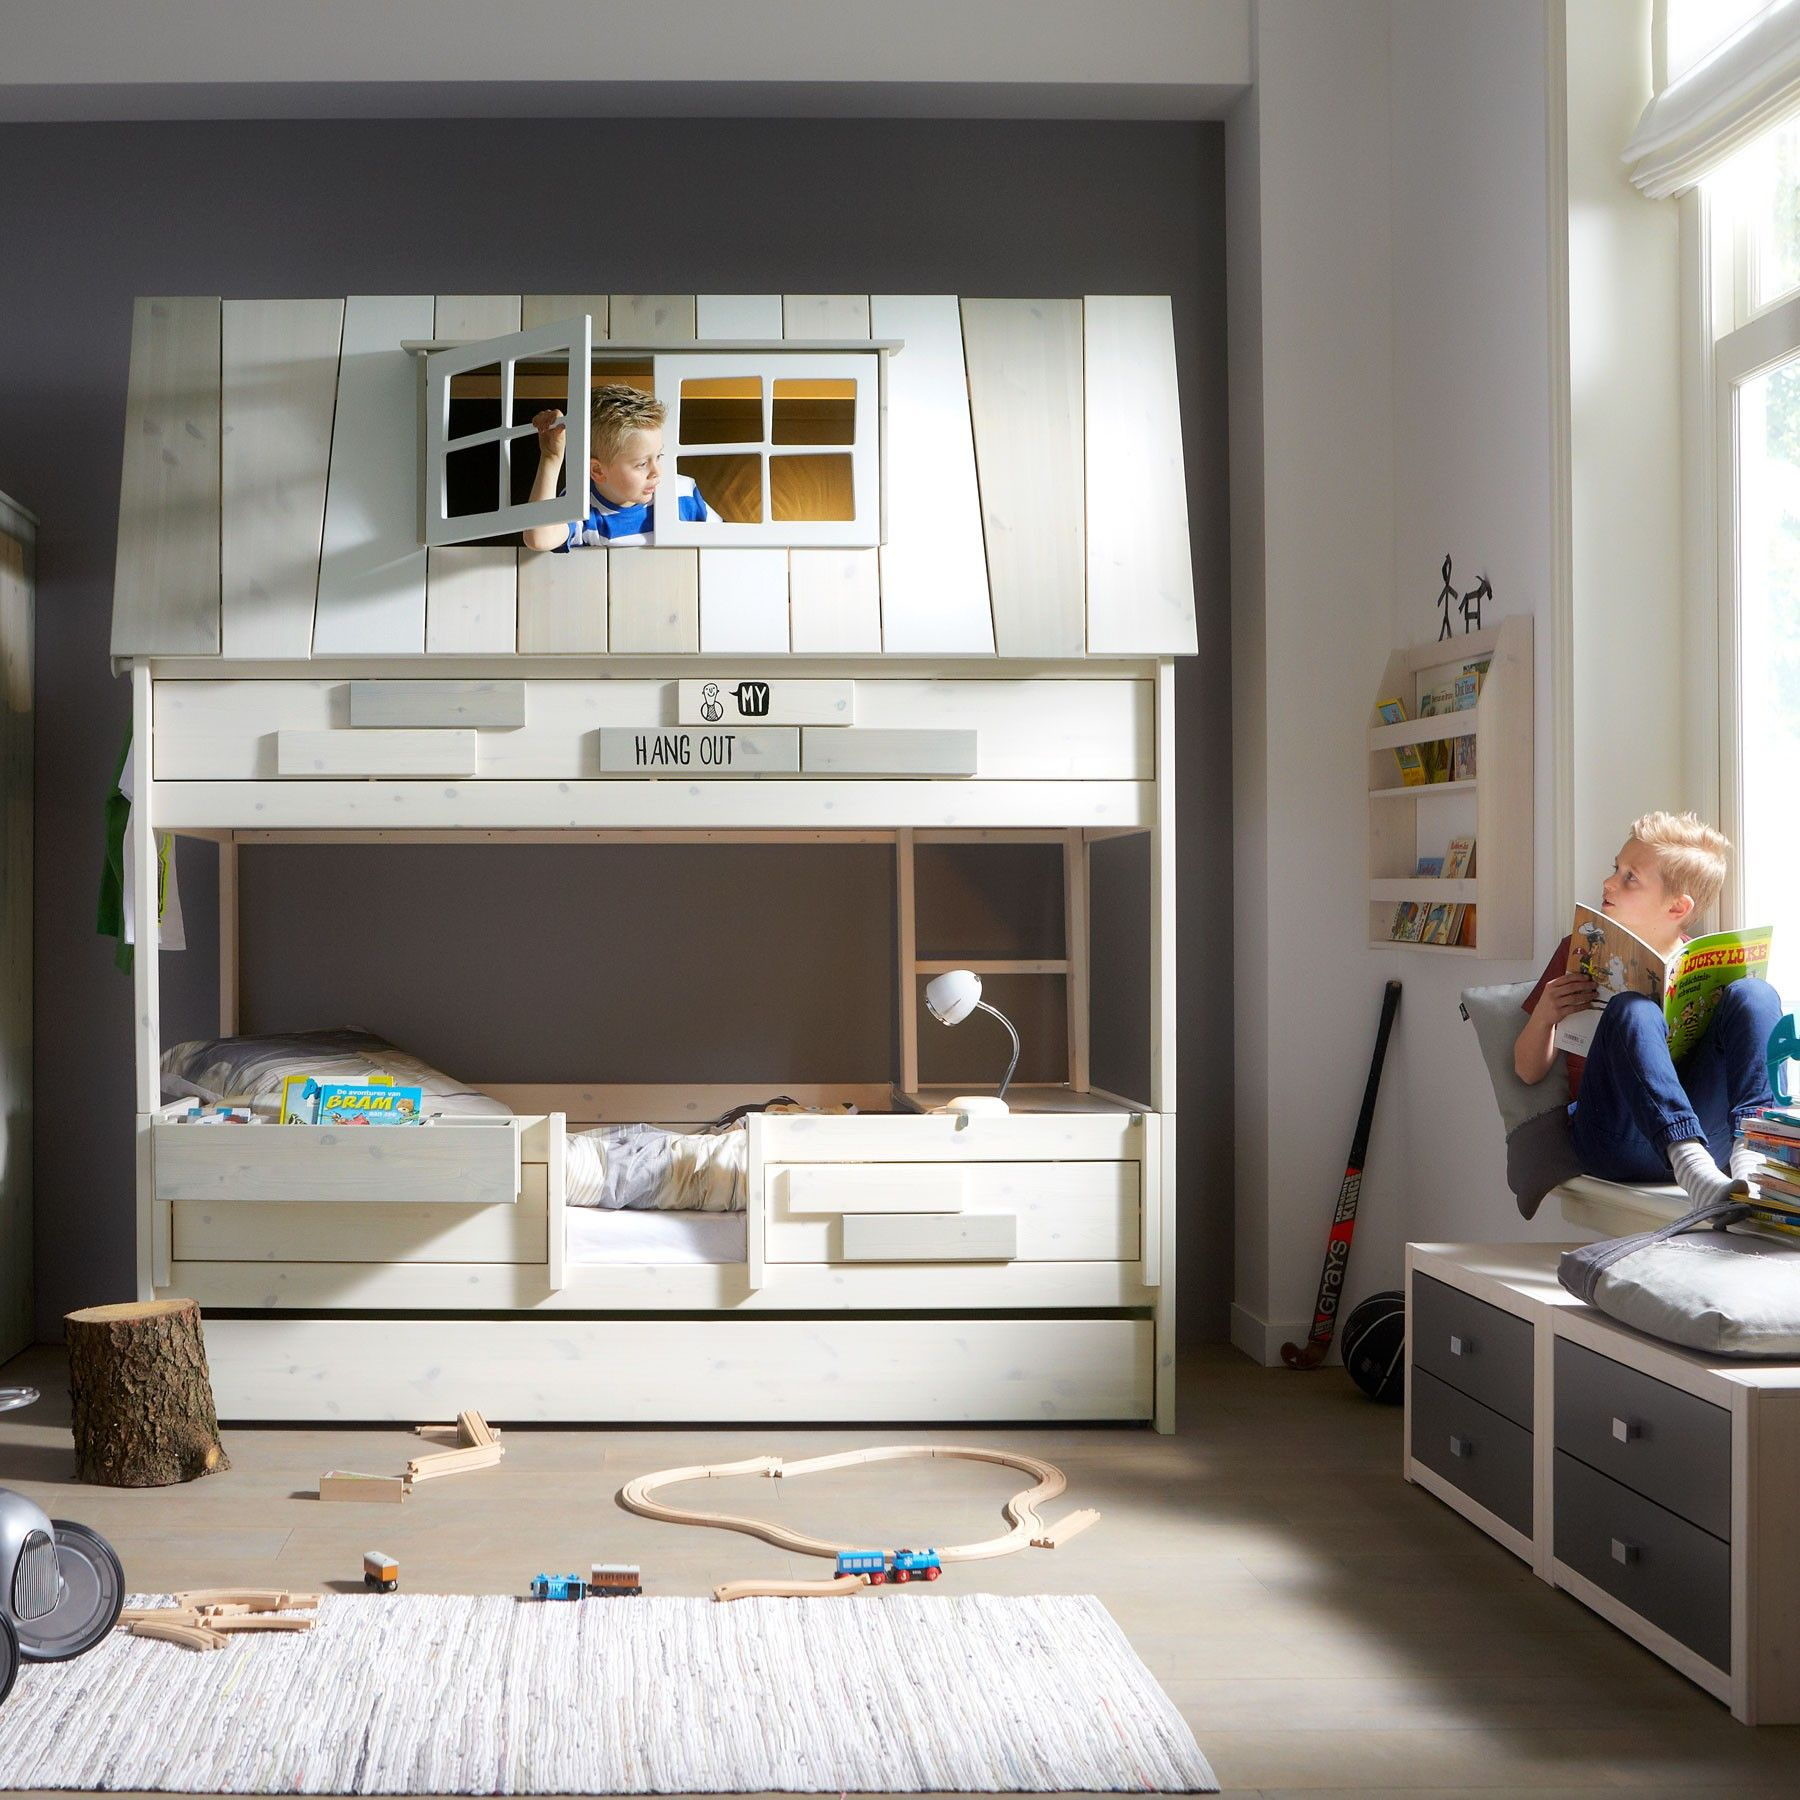 Hang Out Room Ideas Lifetime Kidsrooms My Hangout Childrens Bed Kinderzimmer